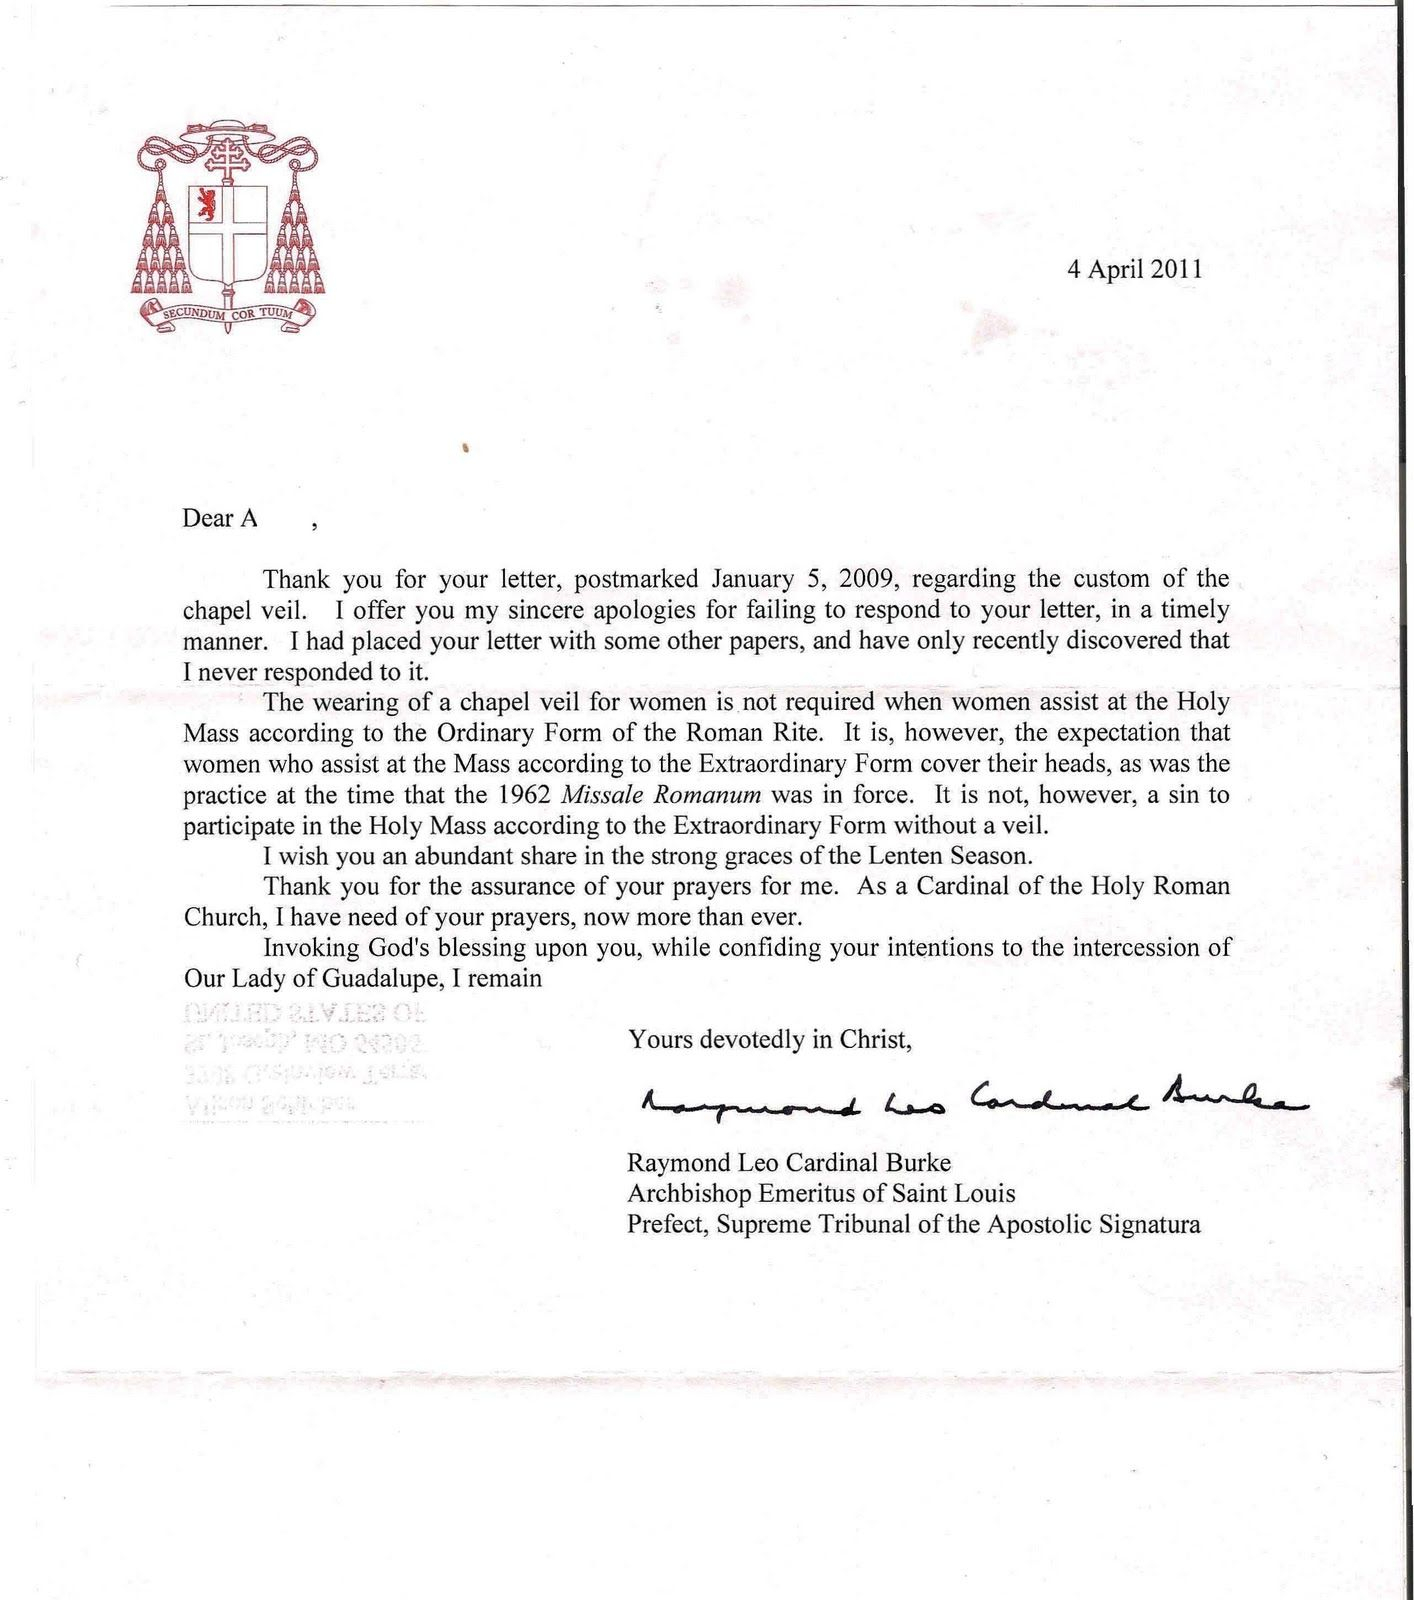 Immigration Reference Letter Template - Sample Reference Letter for A Friend for Immigration